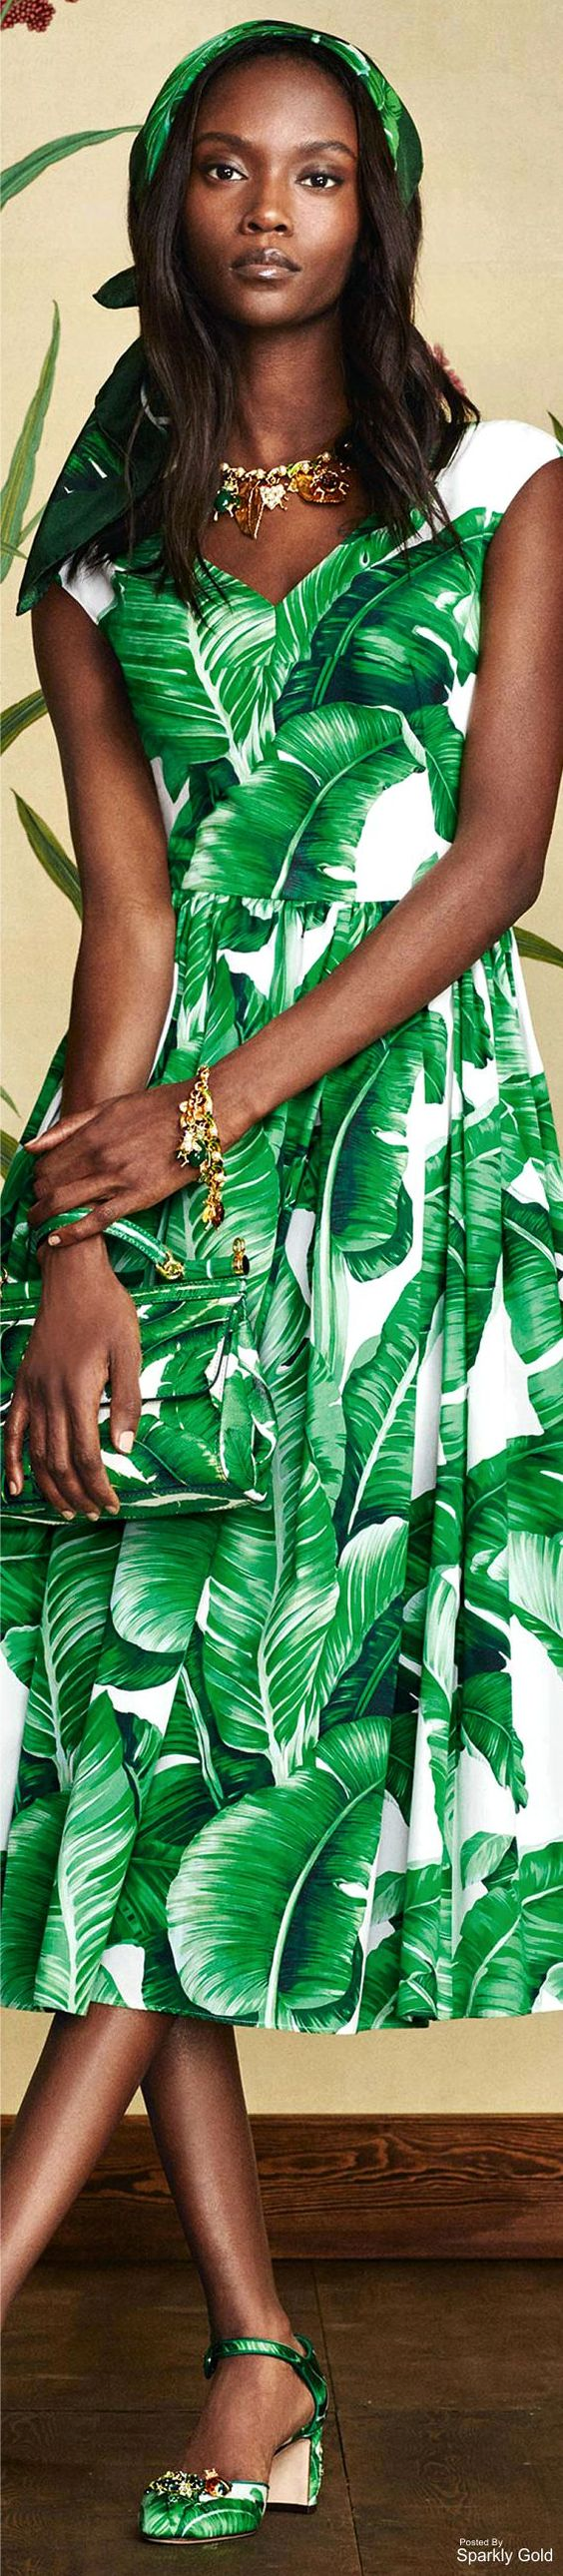 D&G Fall 2016 Botanical Garden: